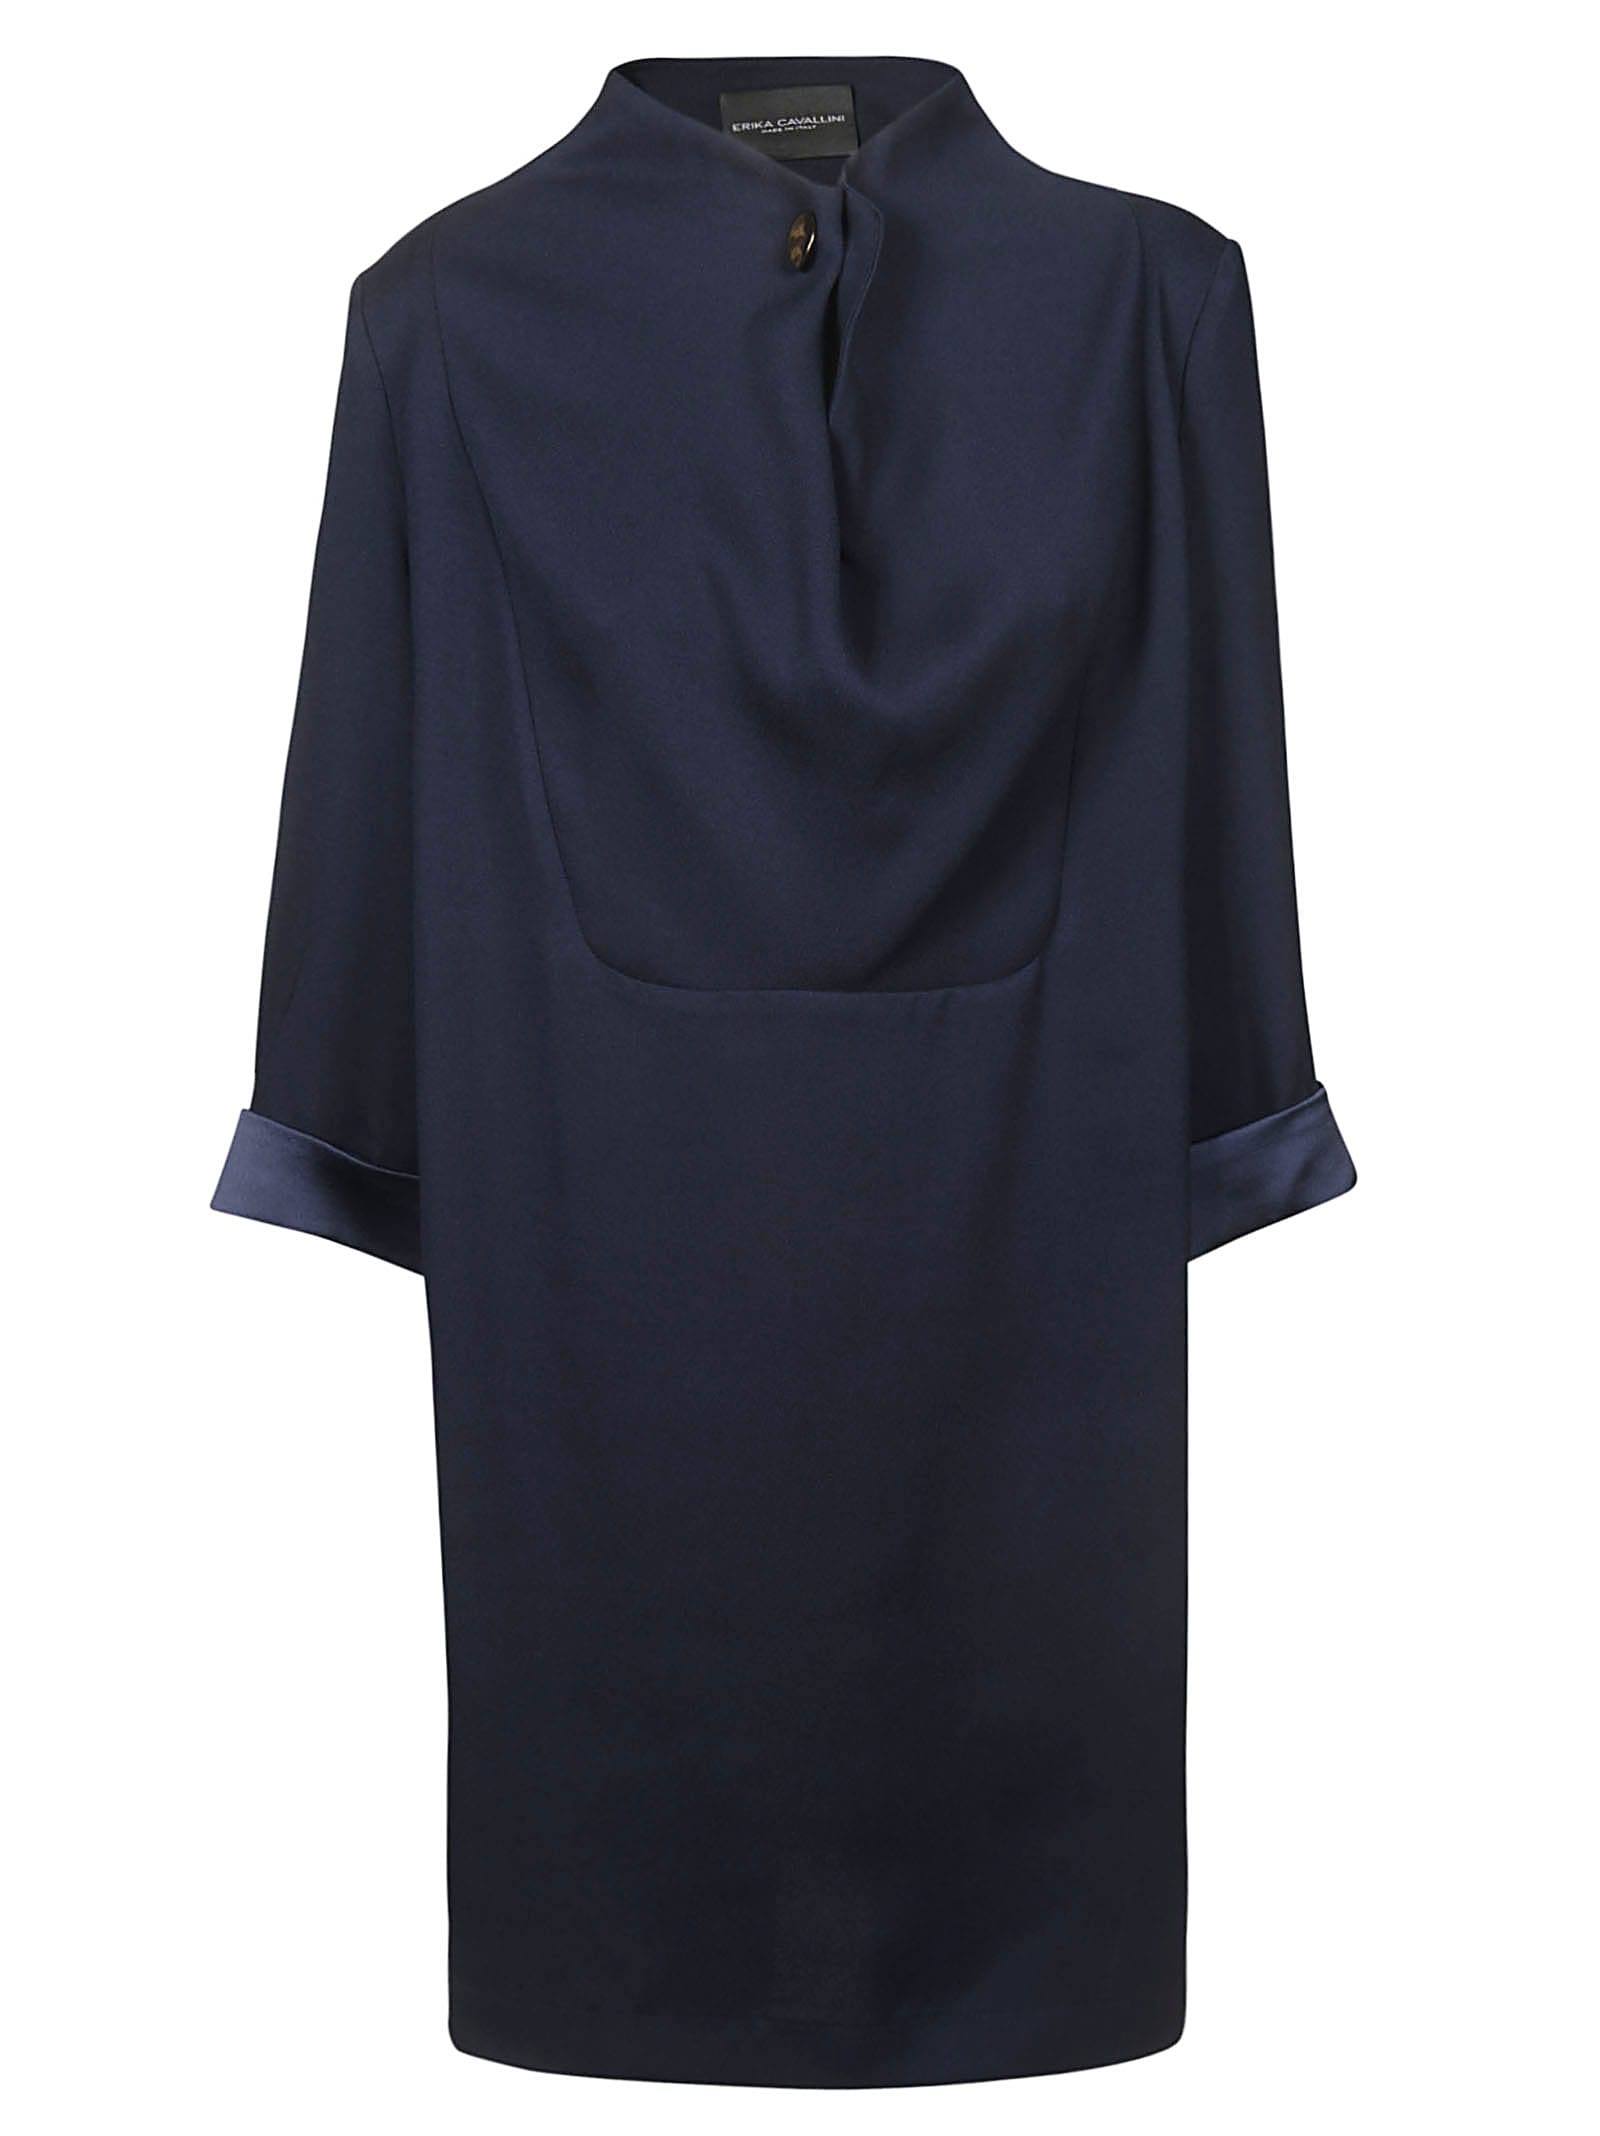 Erika Cavallini Long Sleeved Dress